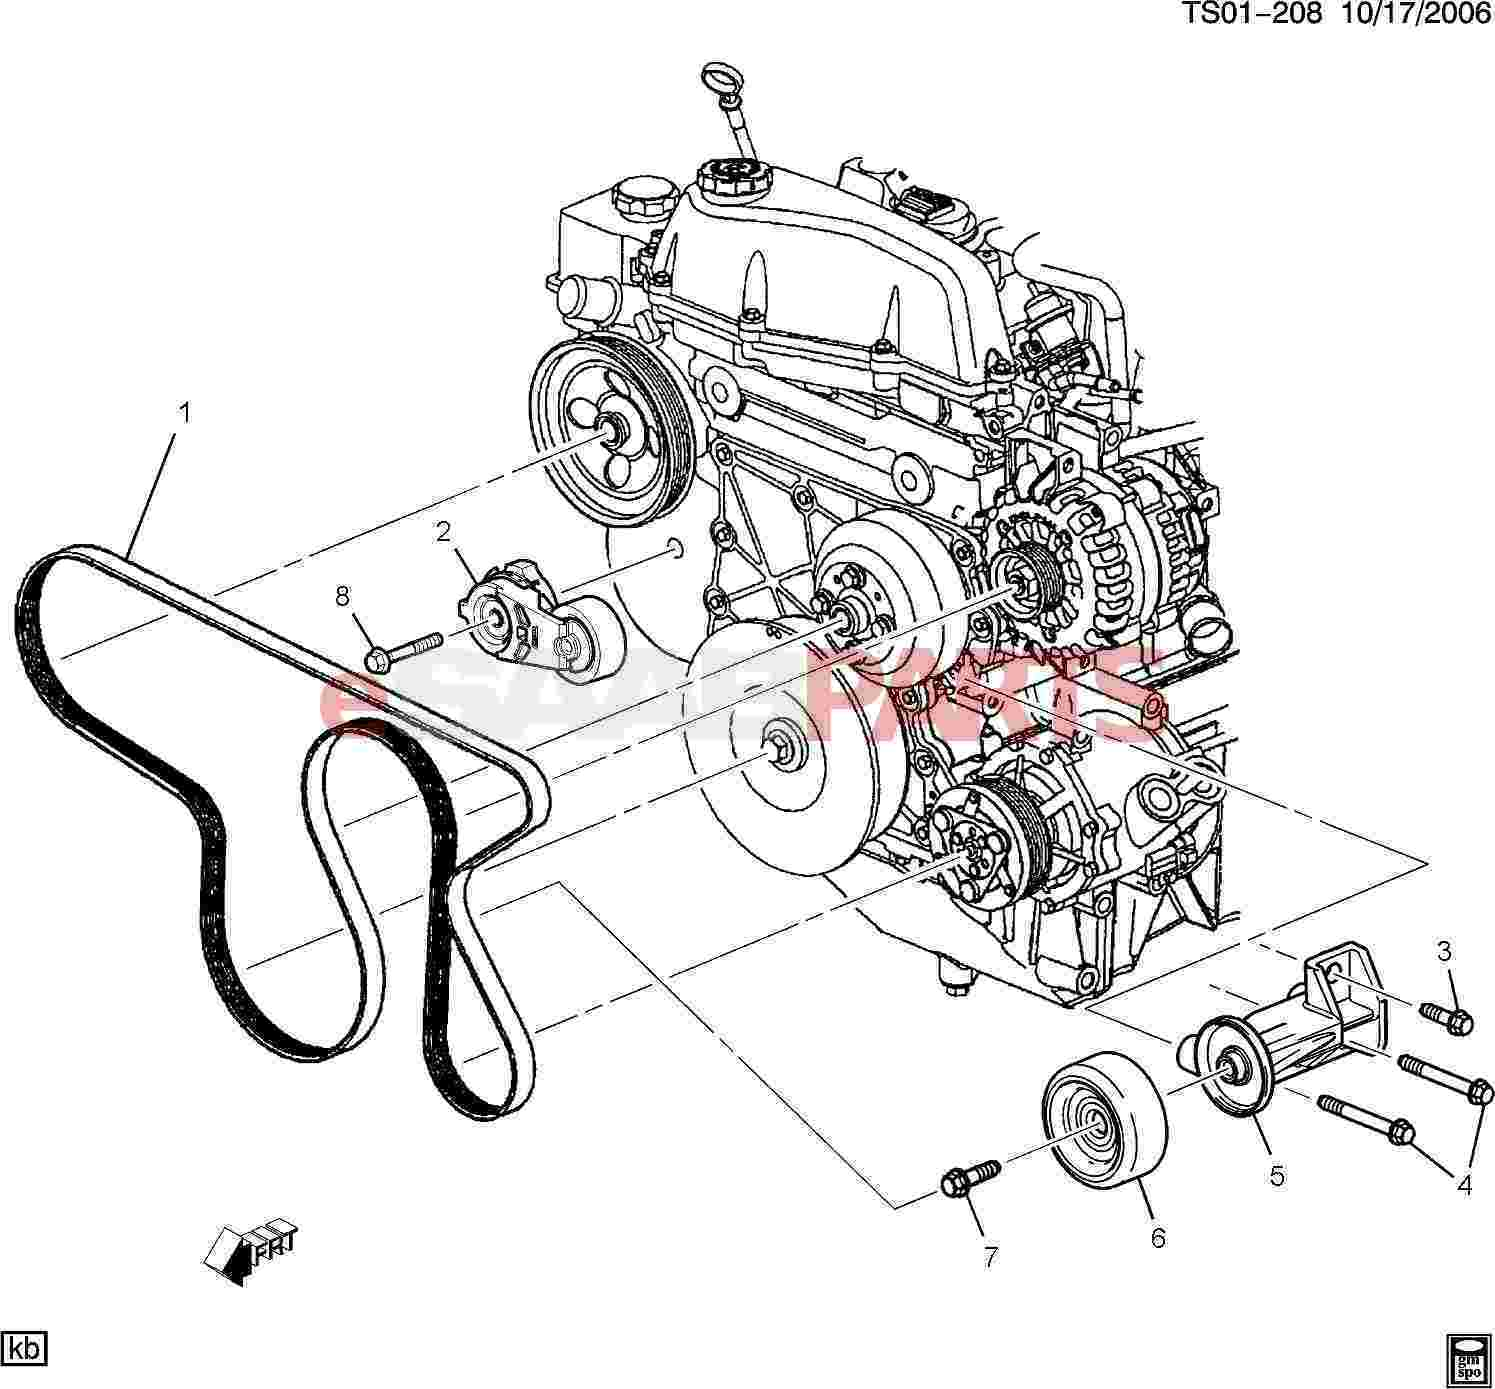 2002 Chevrolet Trailblazer Engine Diagram Wiring Diagram Frankmotors Es